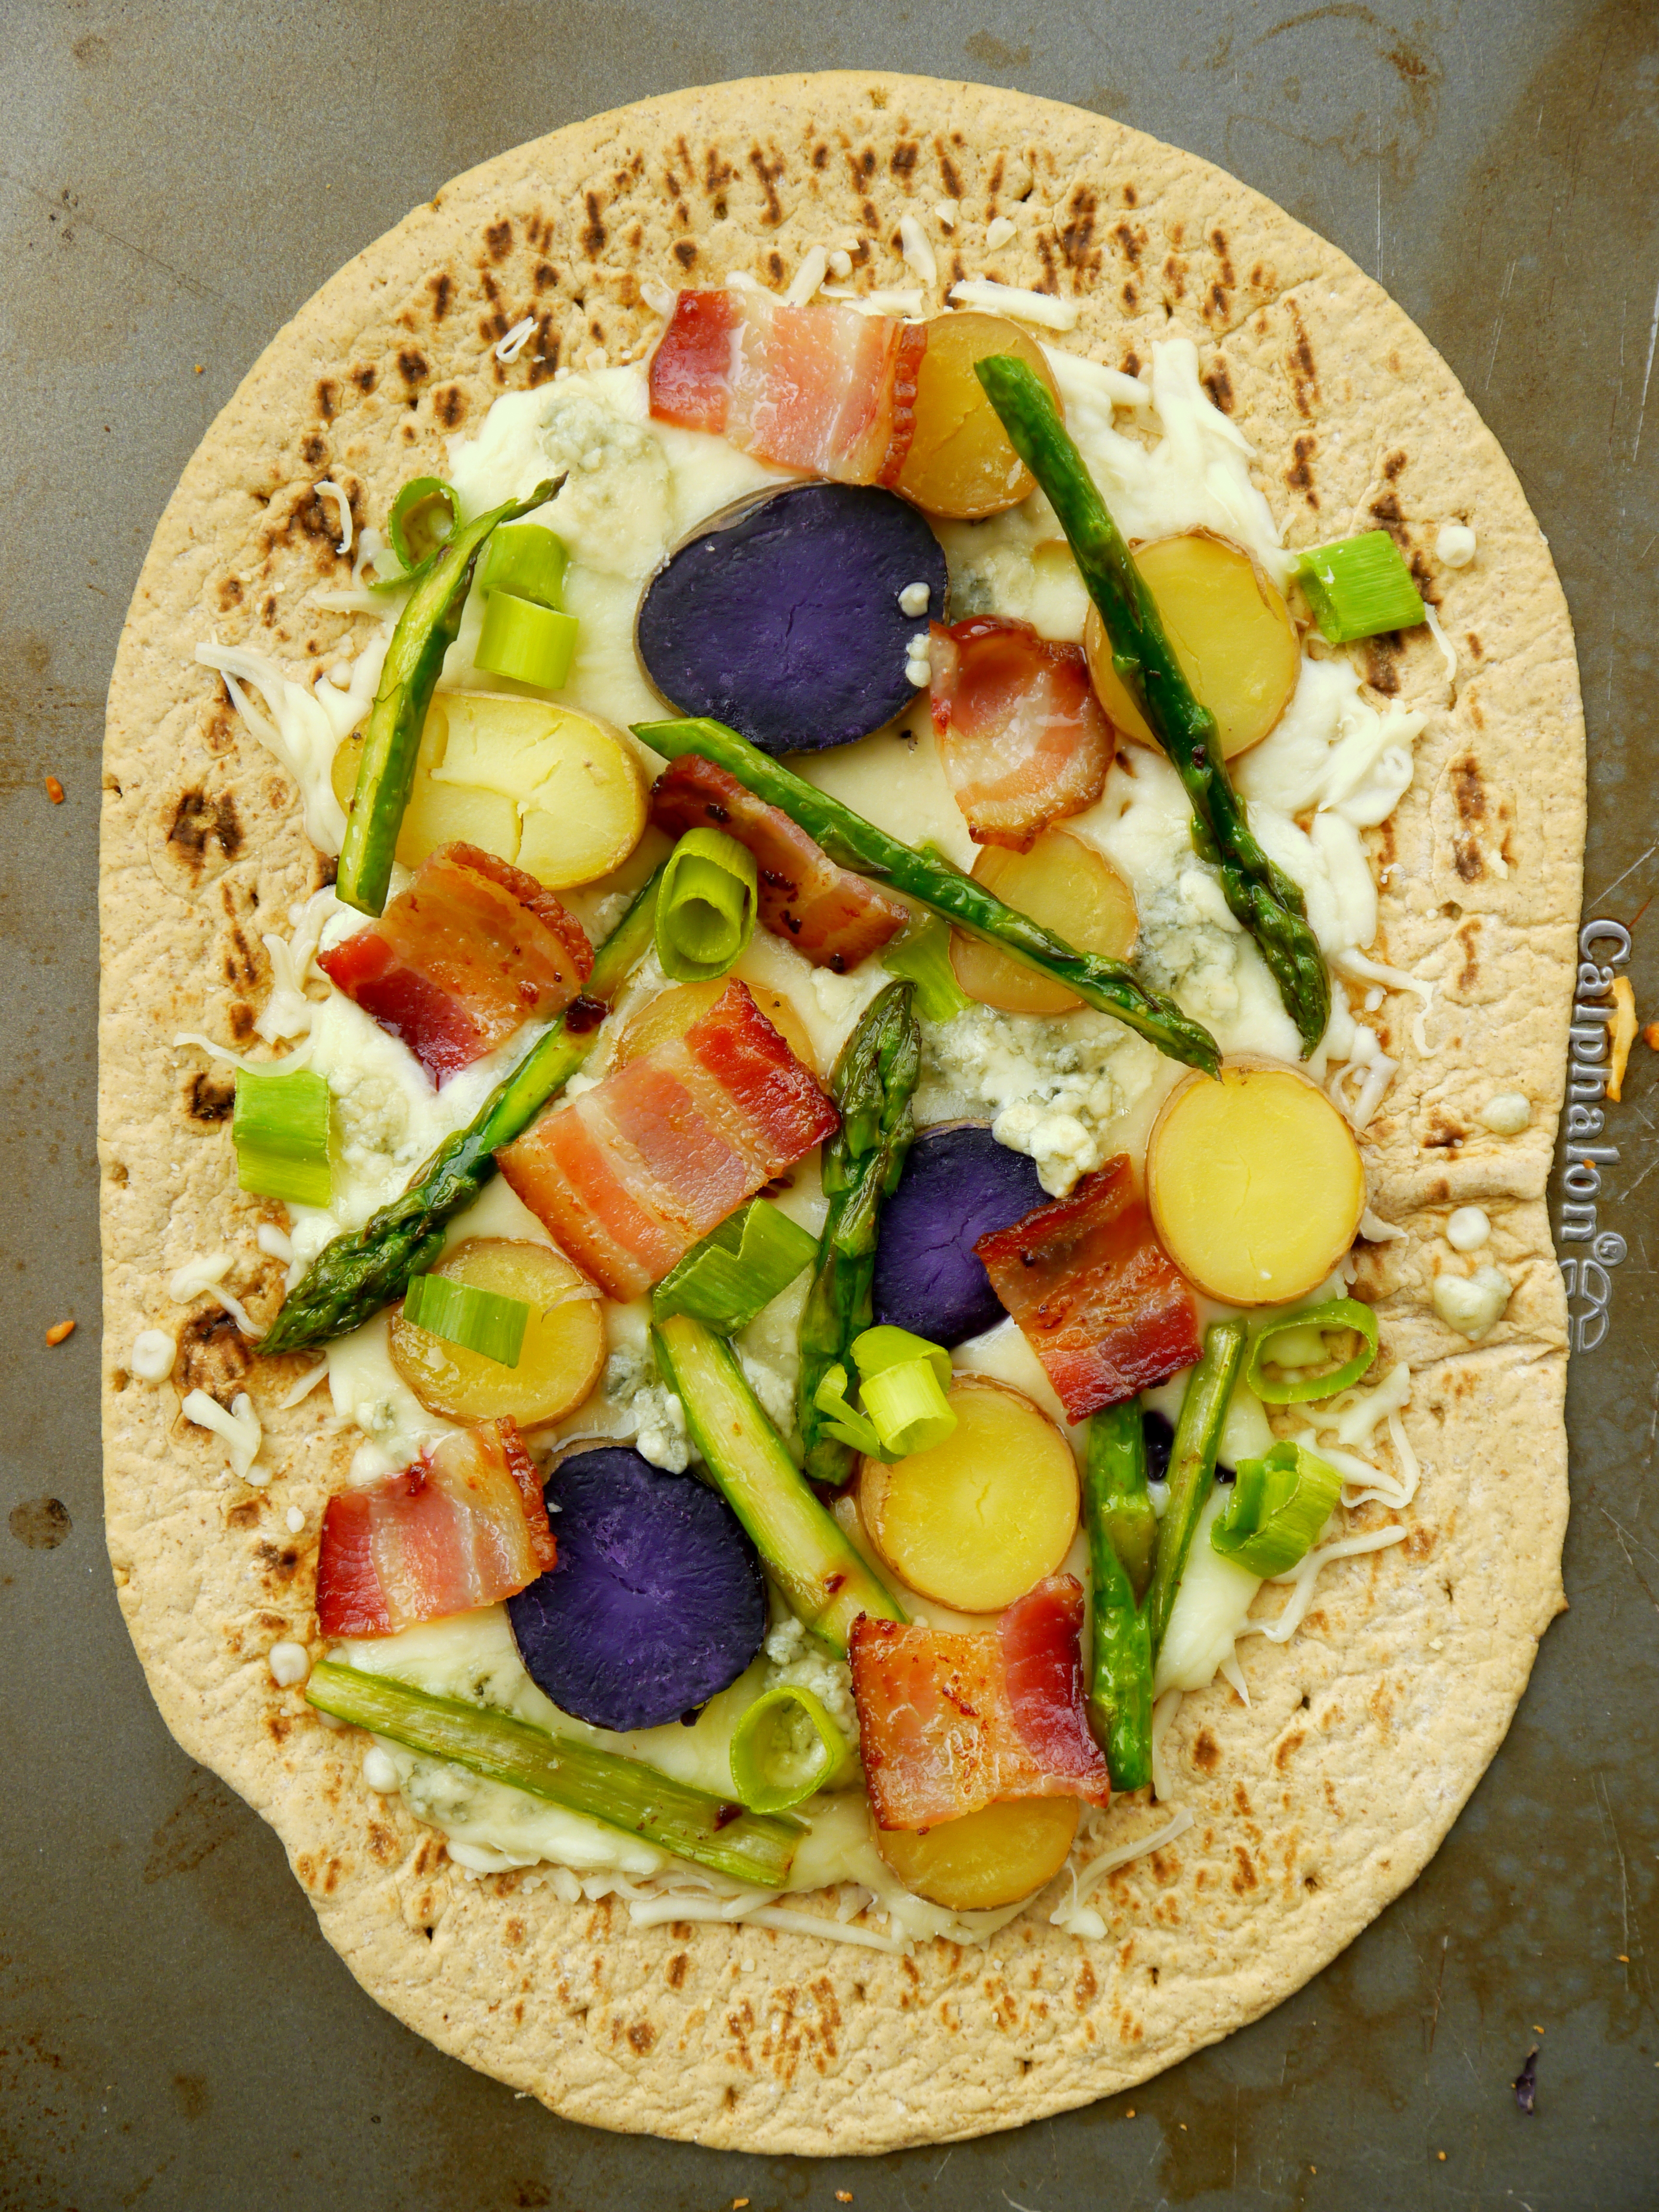 Asparagus And Fingerling Potato Flatbread Pizza With Bacon